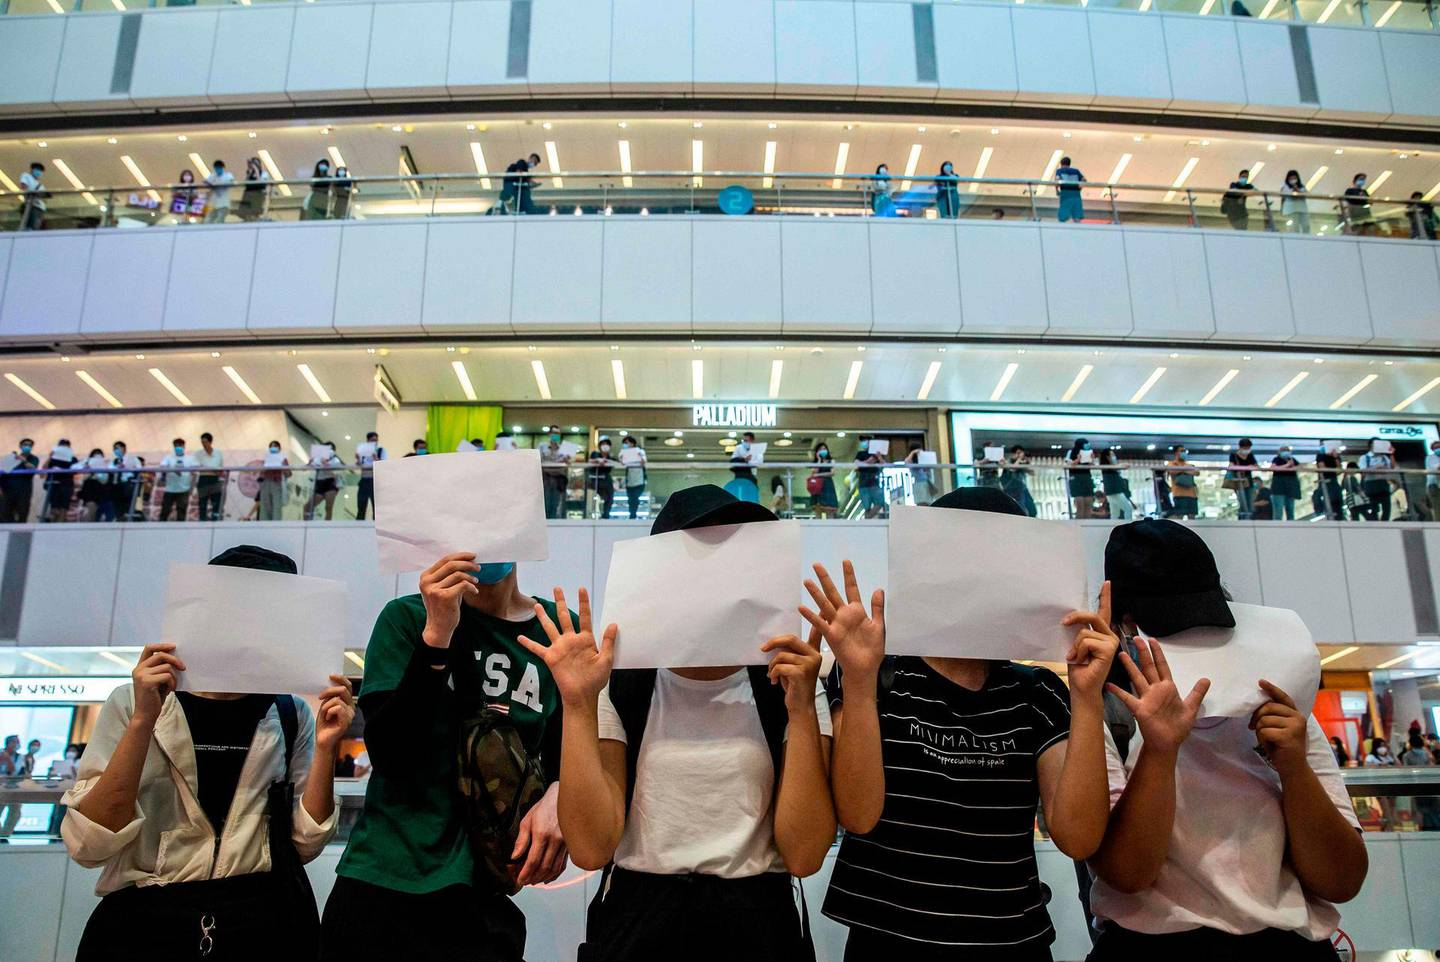 TOPSHOT - Protesters hold up blank papers during a demonstration in a mall in Hong Kong on July 6, 2020, in response to a new national security law introduced in the city which makes political views, slogans and signs advocating Hong Kong's independence or liberation illegal. Hong Kongers are finding creative ways to voice dissent after Beijing blanketed the city in a new security law and police began making arrests for people displaying now forbidden political slogans. / AFP / ISAAC LAWRENCE